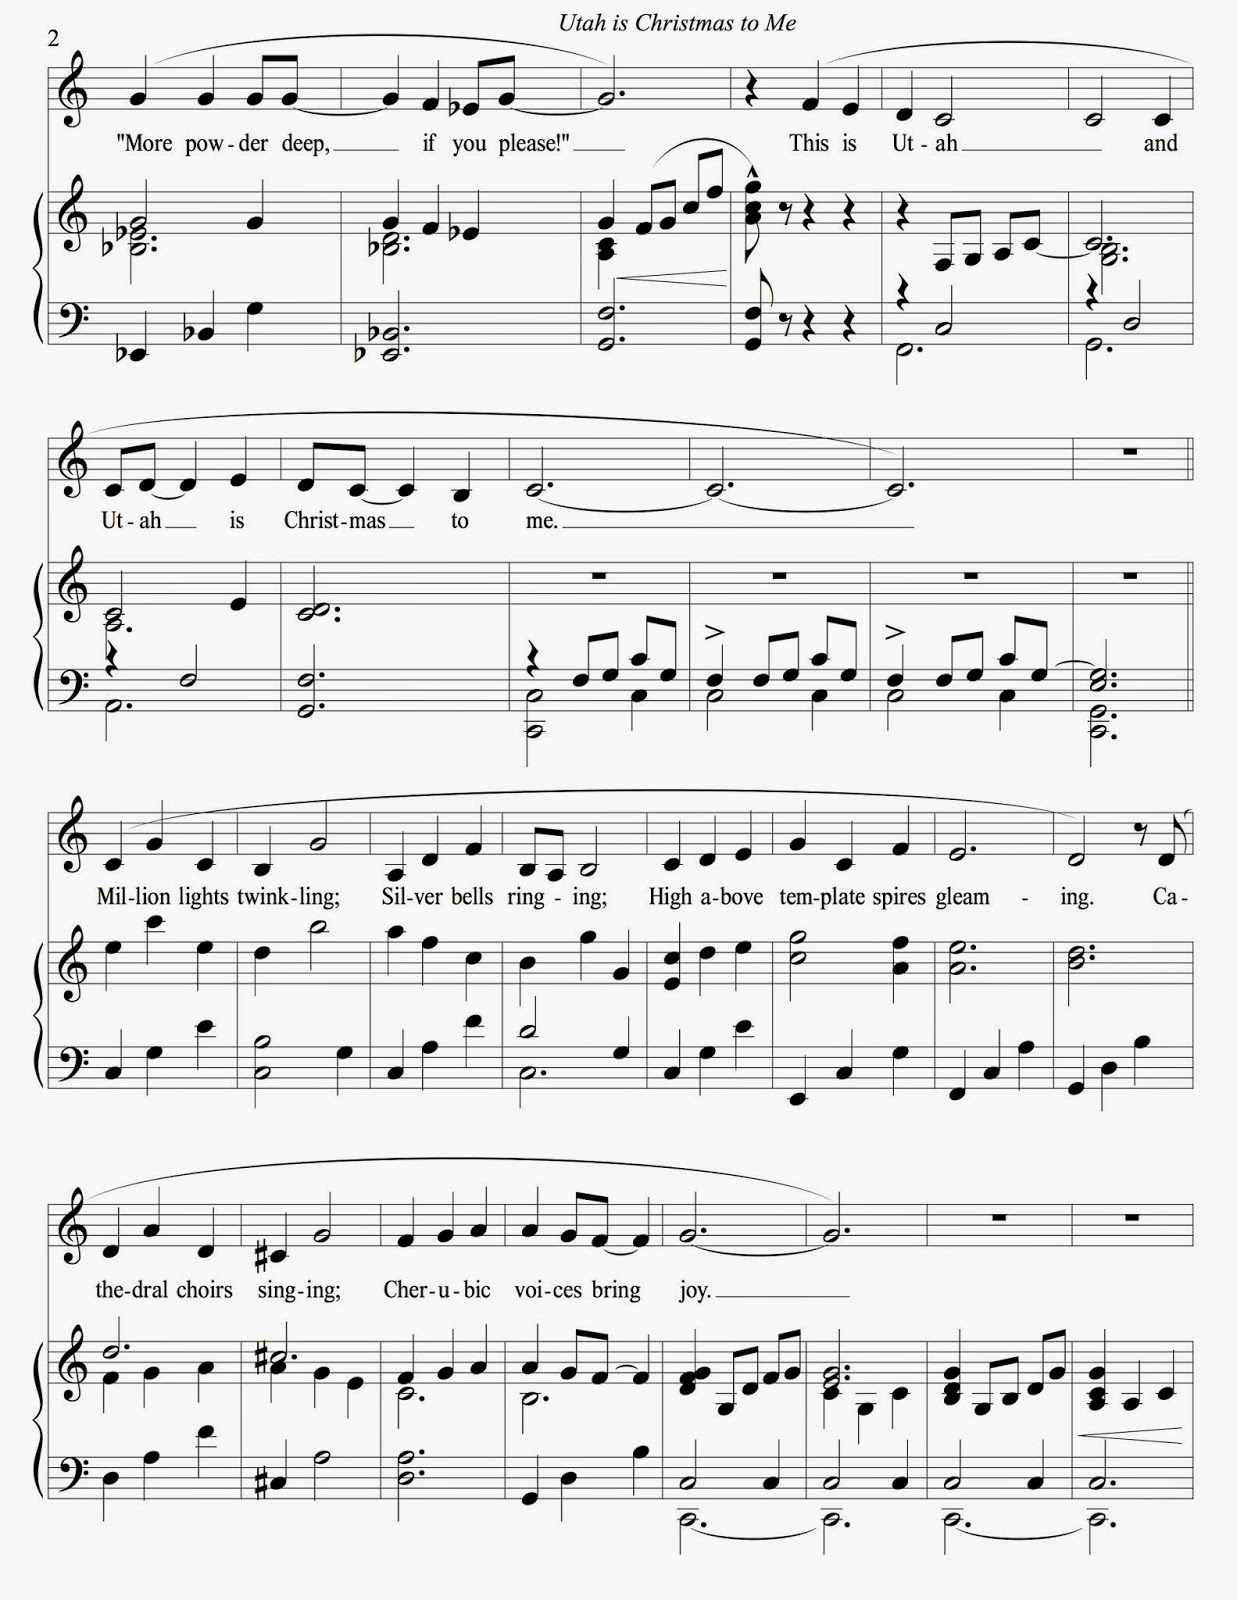 Prayer of the children the story behind the song the bestor a kurt bestor christmas 2014 original carol for download hexwebz Image collections